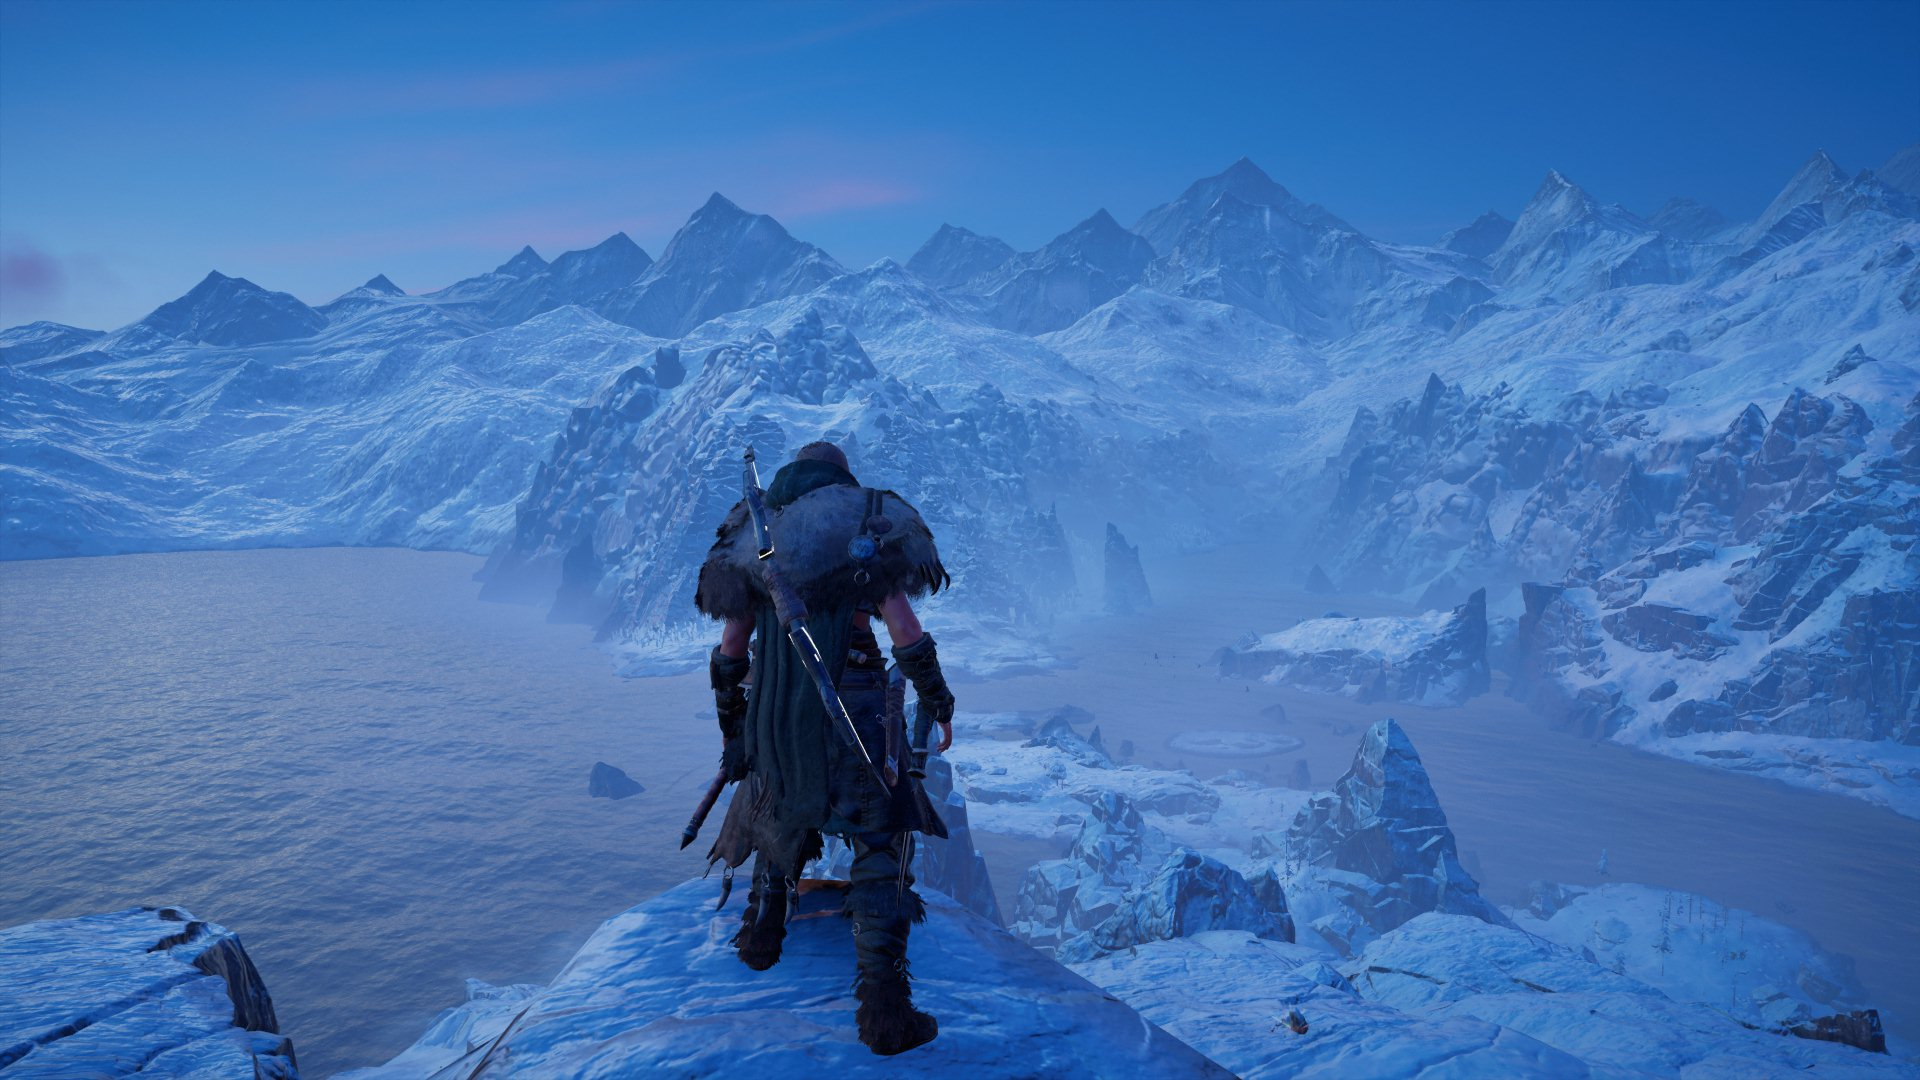 How to get the Assassin's Creed Valhalla Isu weapons we know about so far